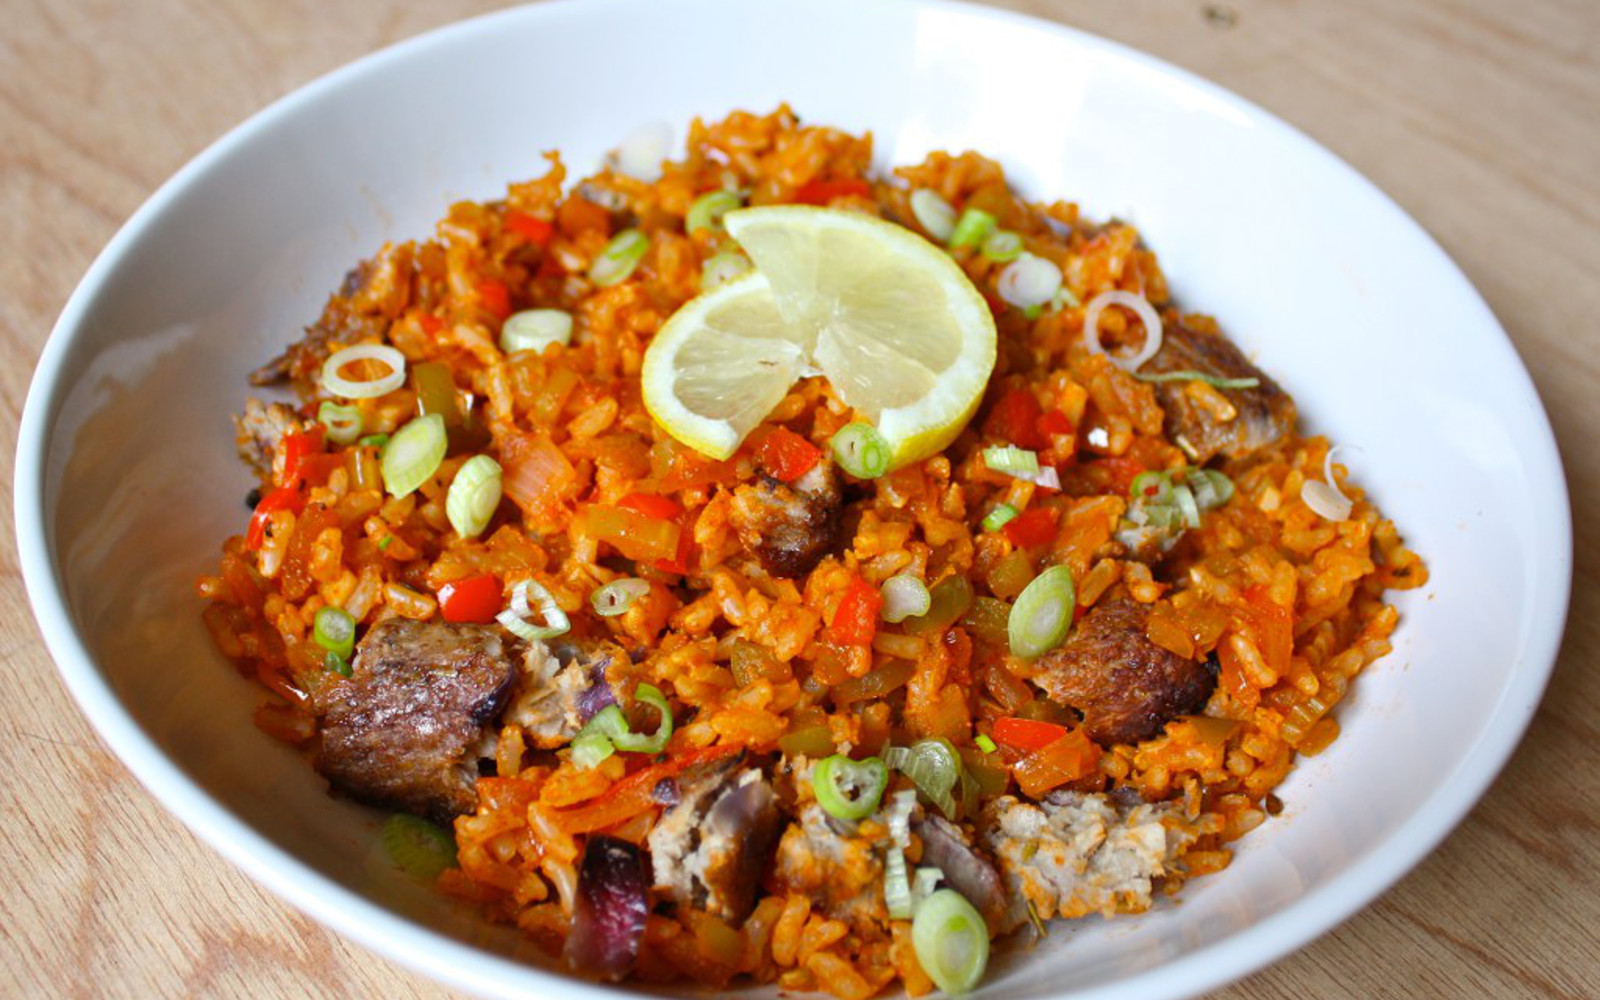 Vegan GLuten-Free Brown Rice Jambalaya topped with lemon